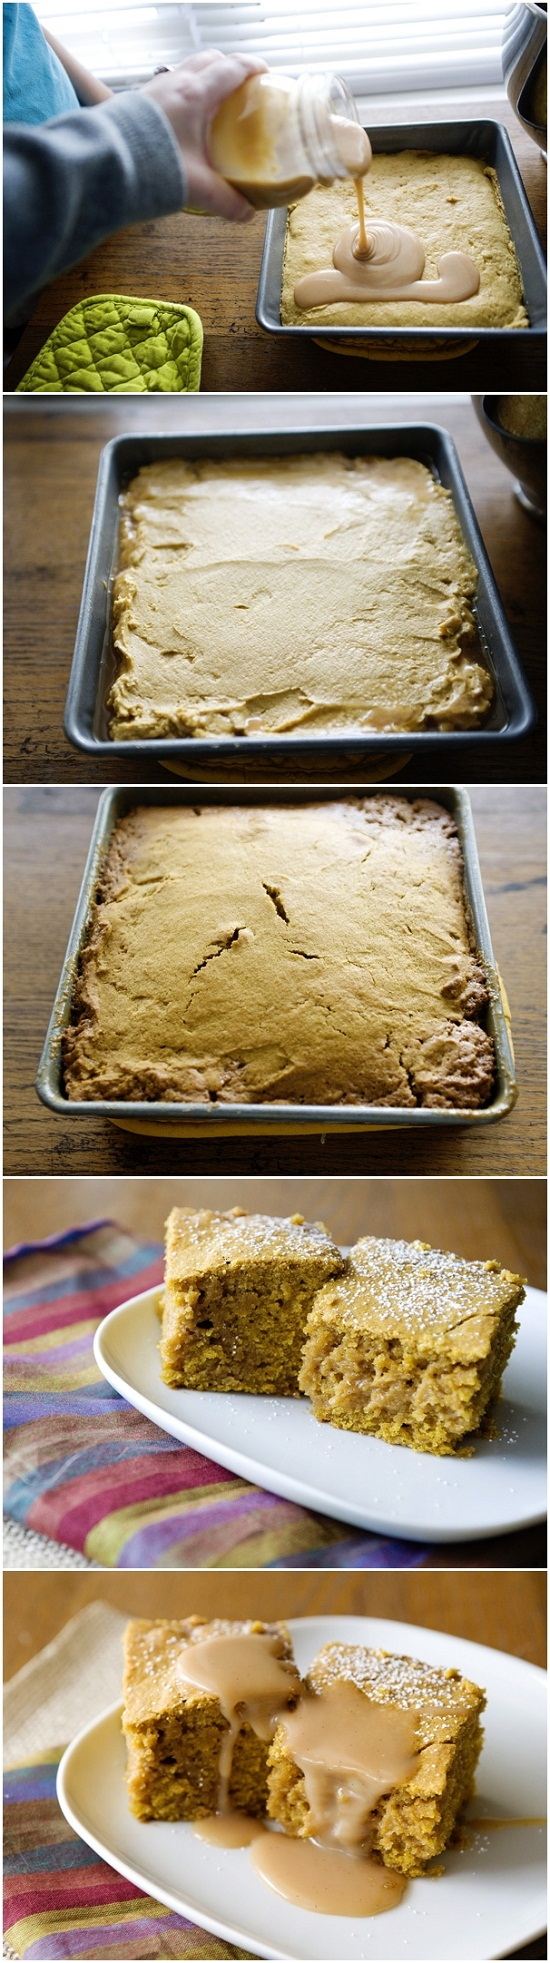 Pumpkin-Salted-Caramel-Blondies-Recipe